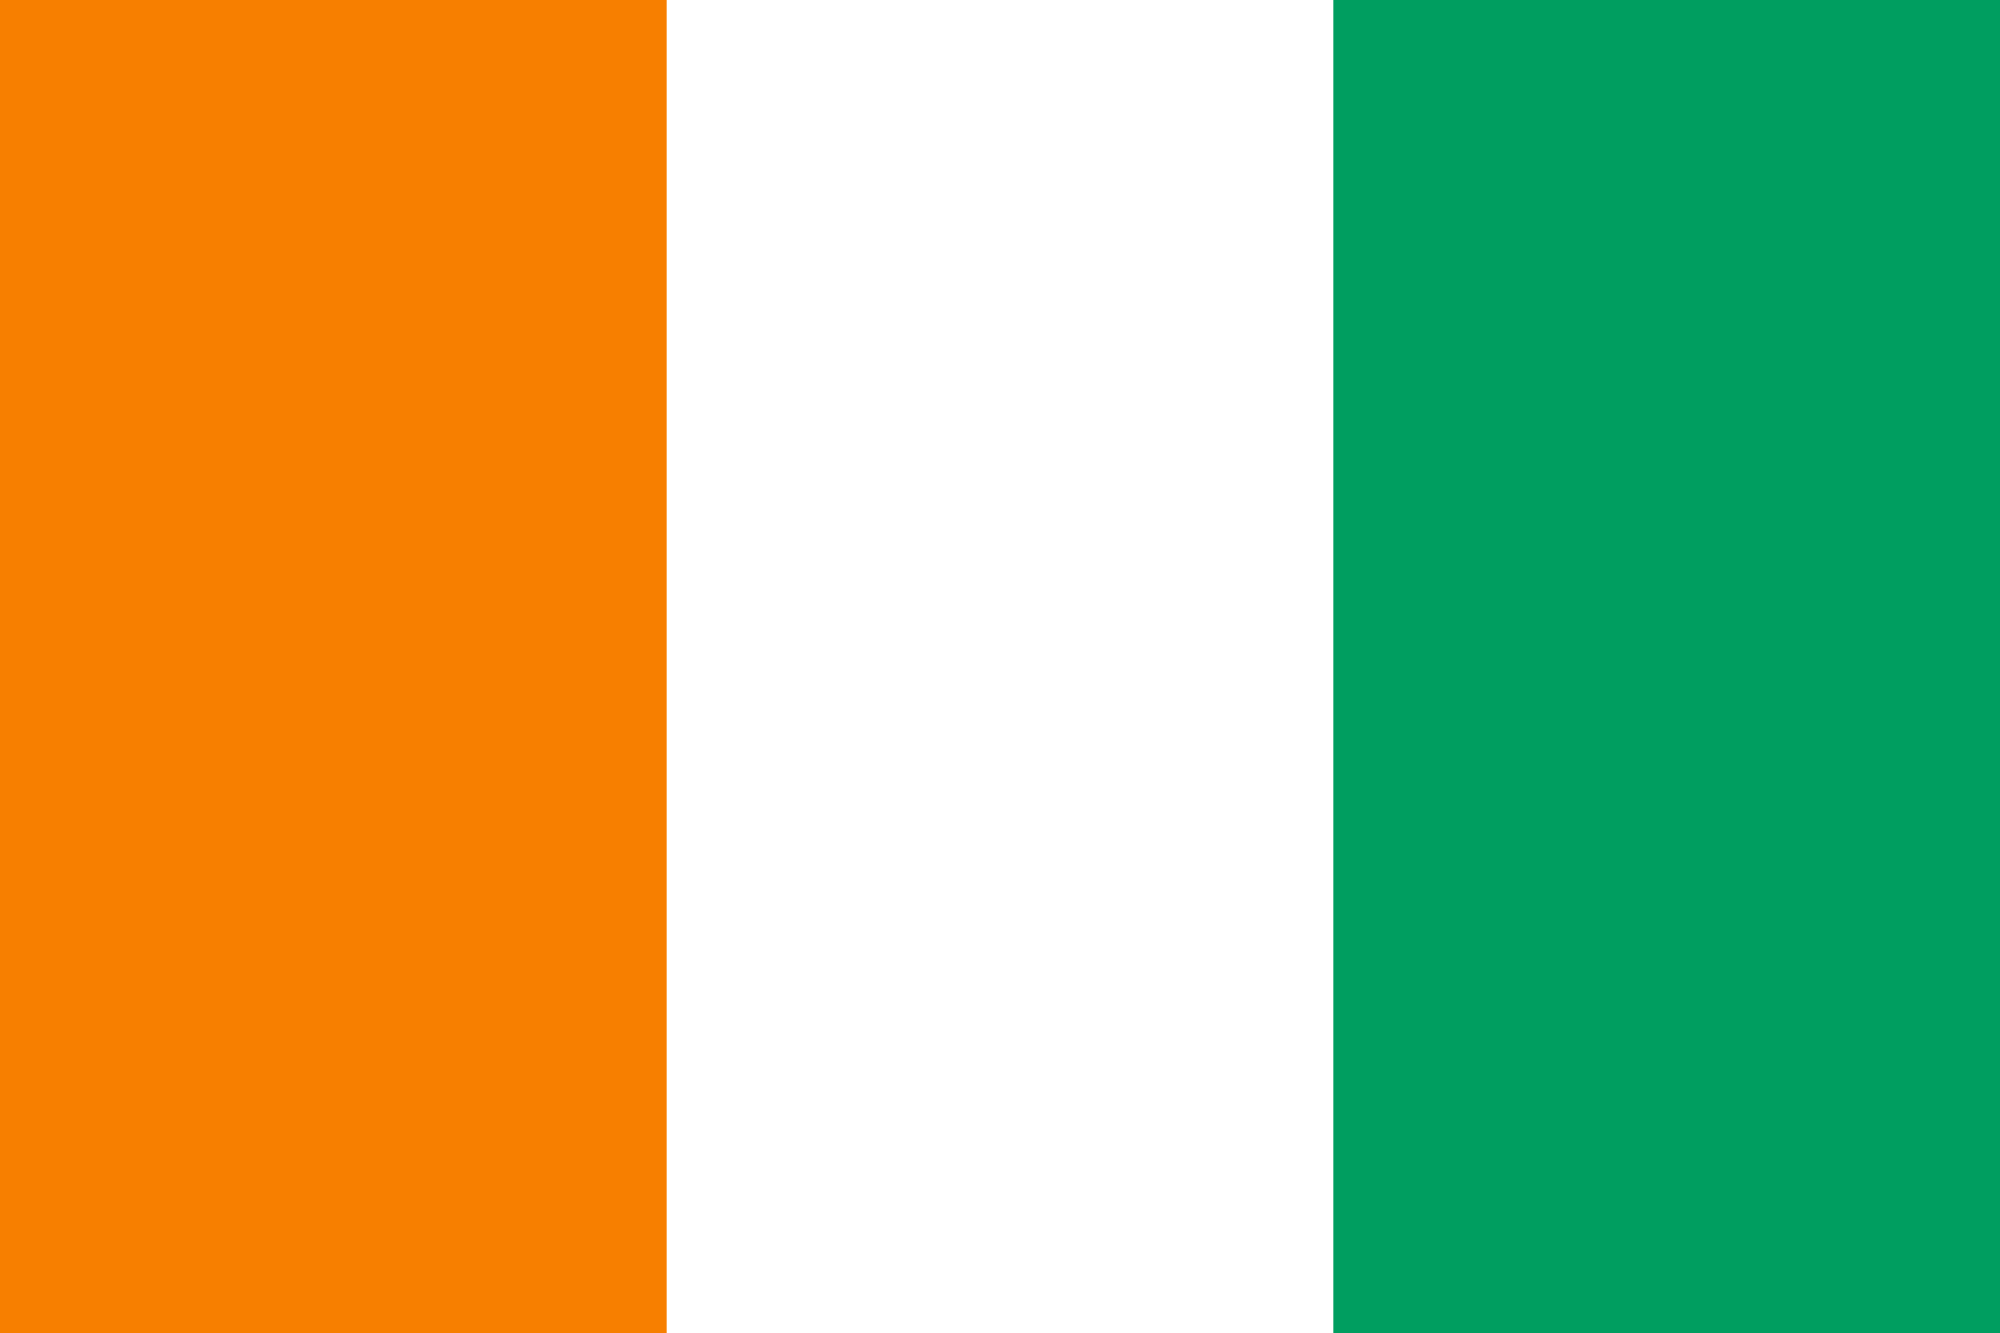 Côte d'Ivoire - The country's name evokes a time when elephants were plentiful, but today they are found in isolated and precarious populations. Conservation efforts were hampered by the prolonged period of political insecurity and conflict that began with the military coup at the end of 1999. Today, Côte d'Ivoire may have only a few hundred surviving elephants. The government signalled its determination to protect them by joining the EPI in 2017.